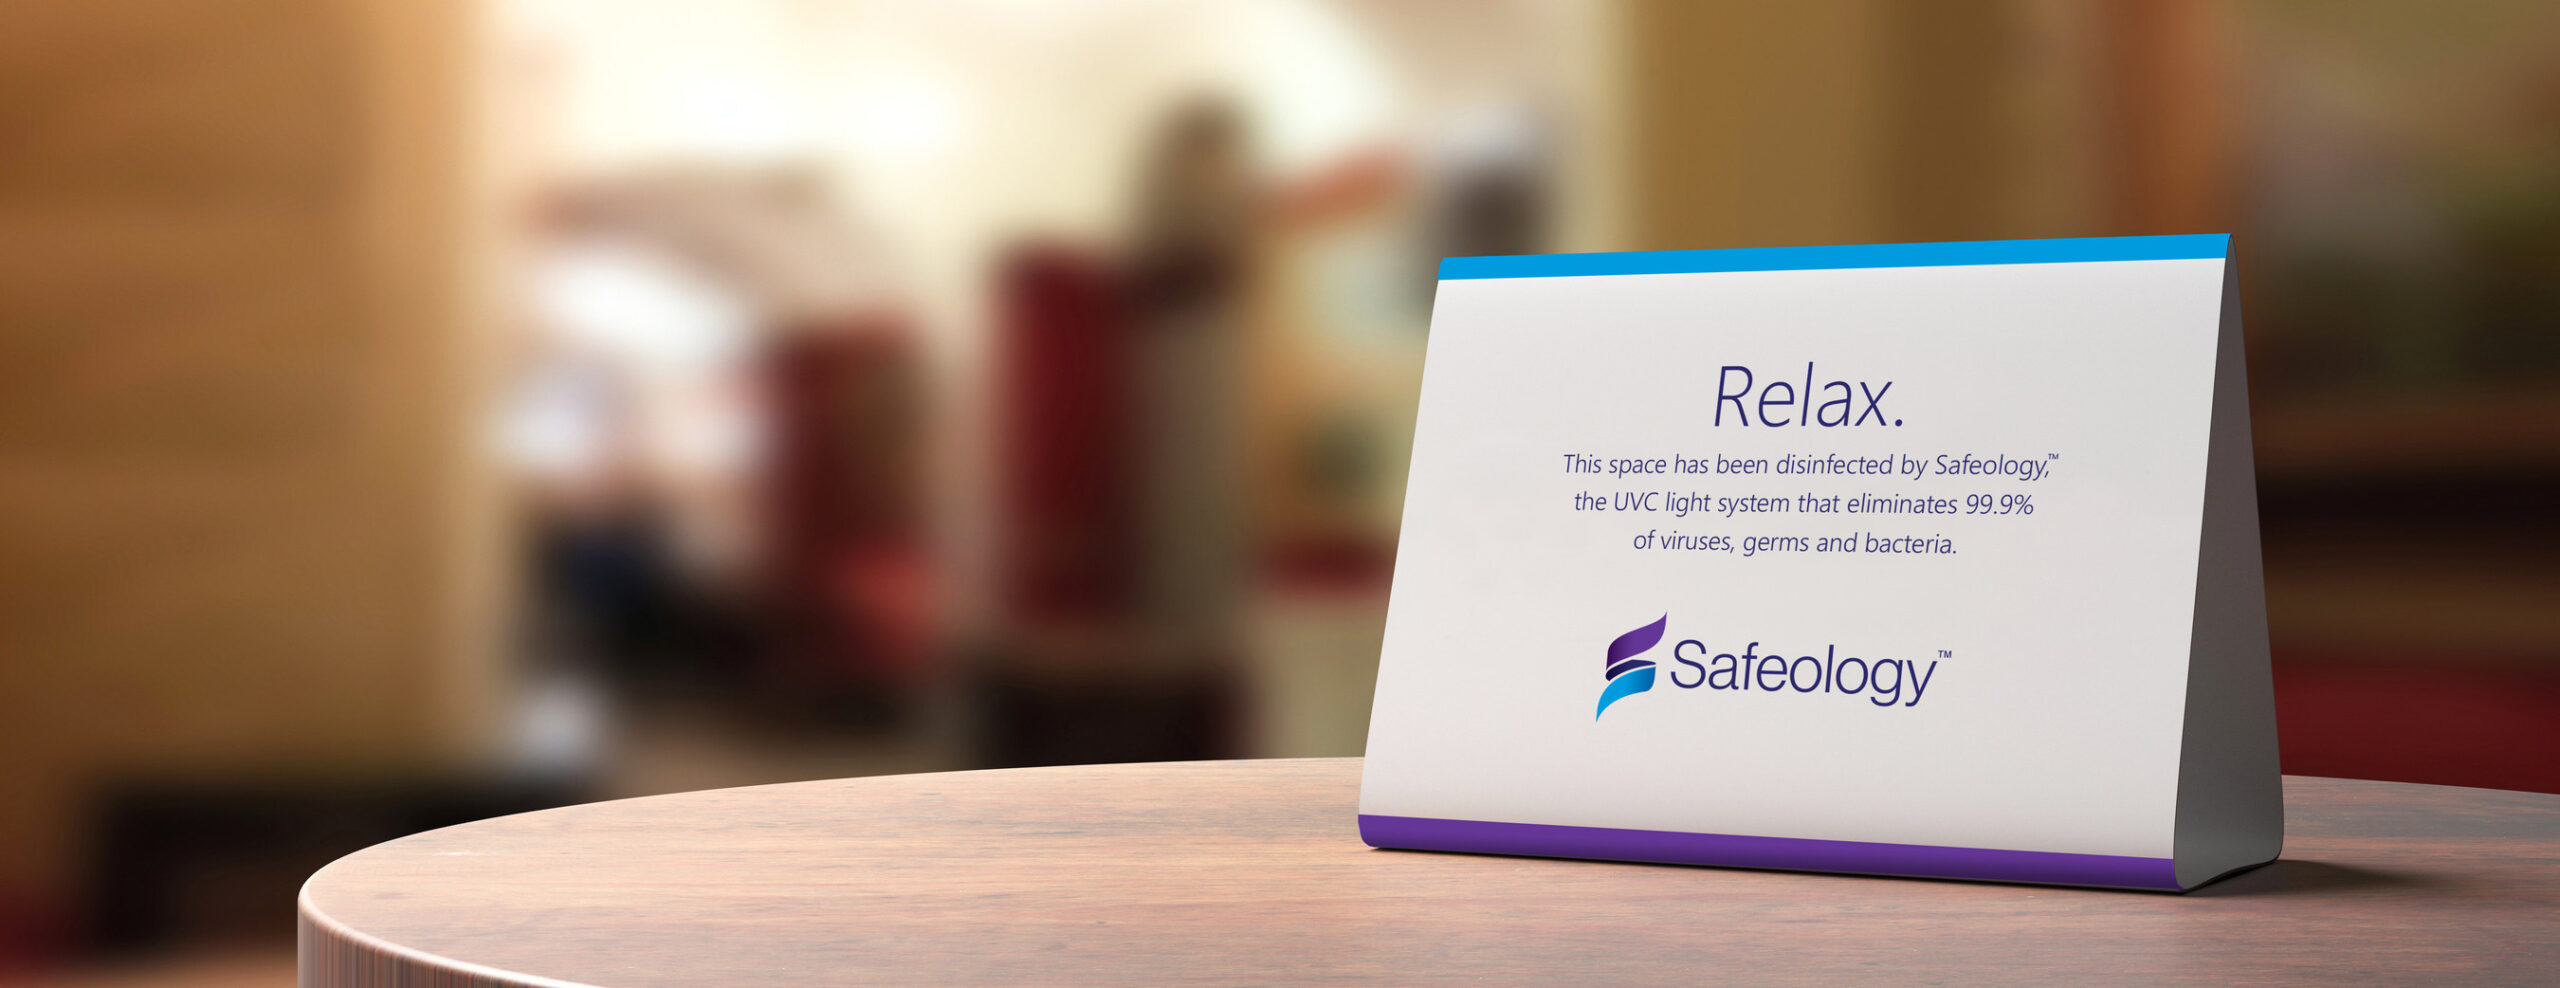 Safeology partners with customers to produce information and signage for customer properties, helping to communicate to the customers' guests and clients the spaces have been effectively disinfected.